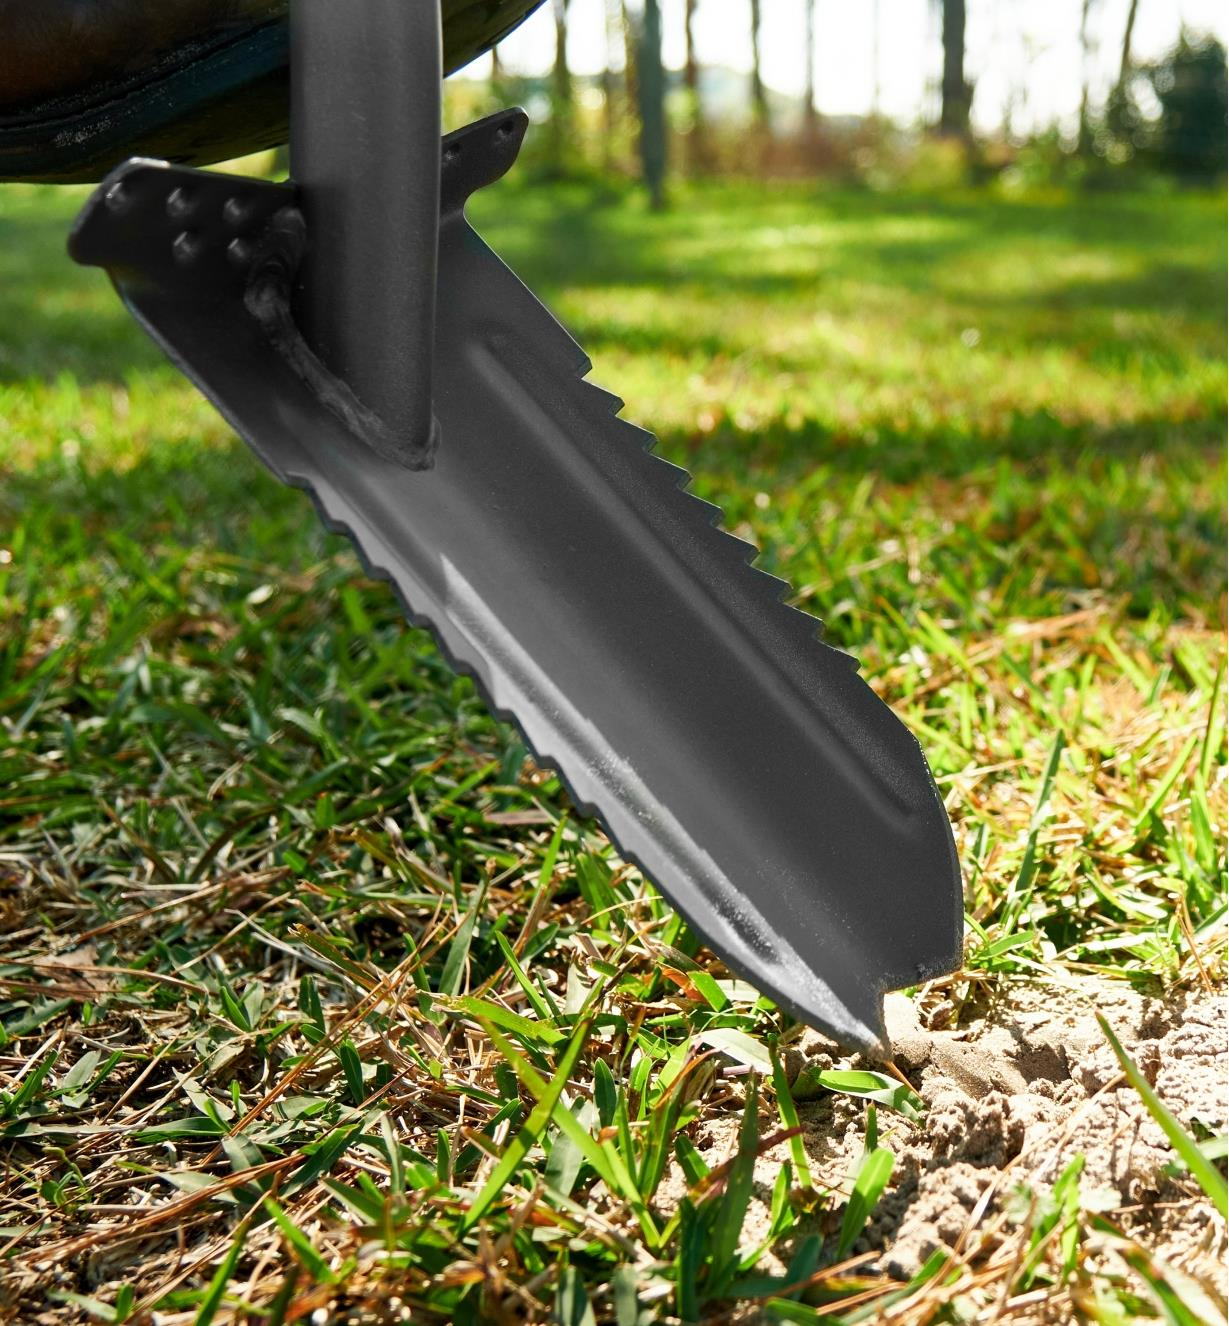 A close view of the root-cutter trenching spade's blade penetrating the soil